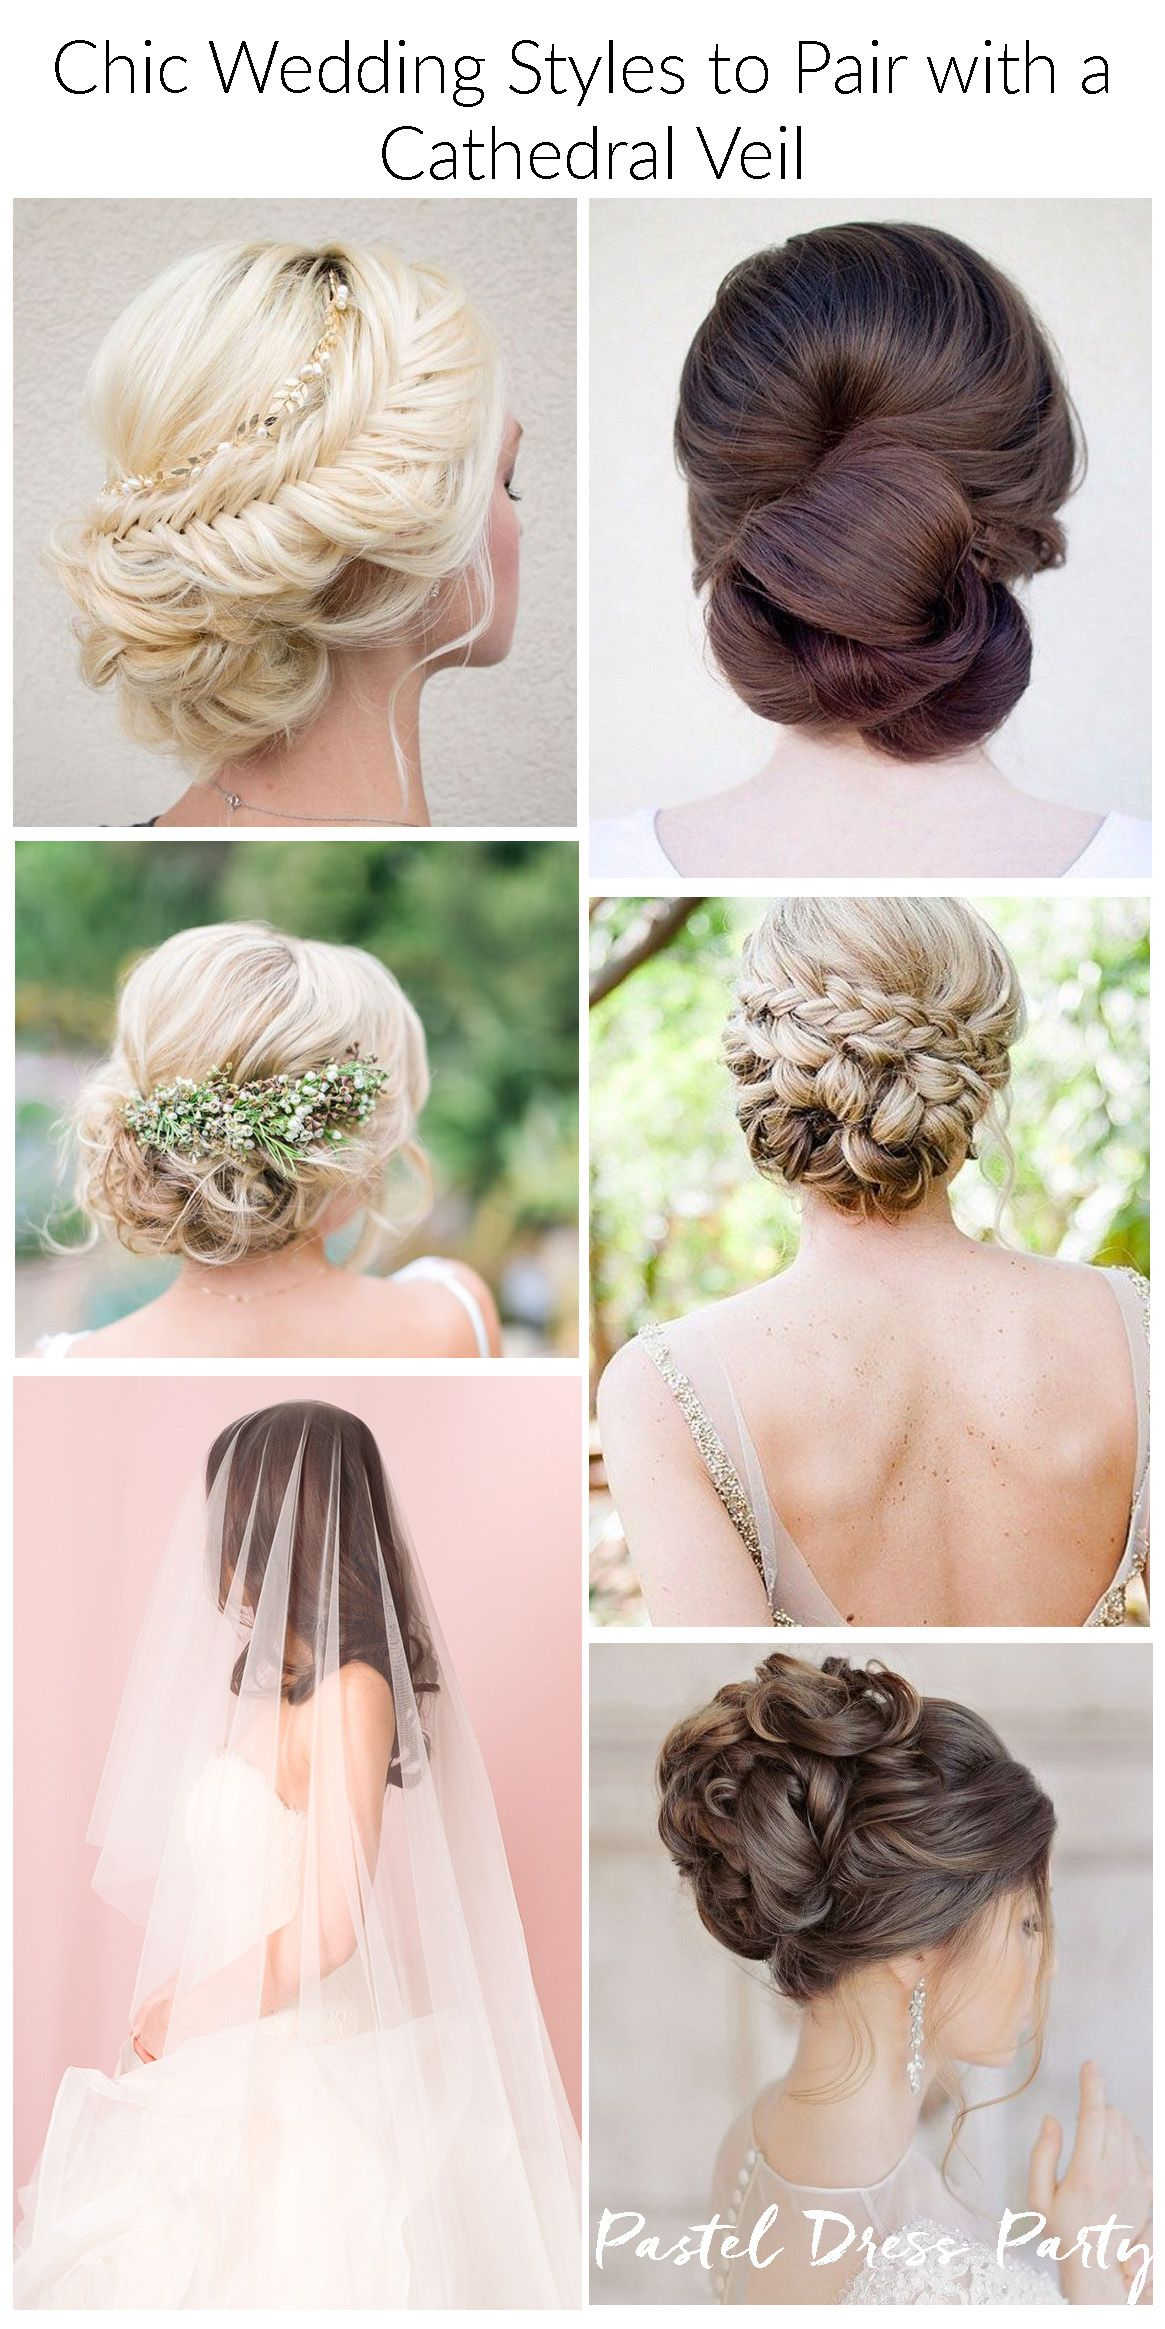 Five chic wedding hairstyles to pair with a cathedral veil these